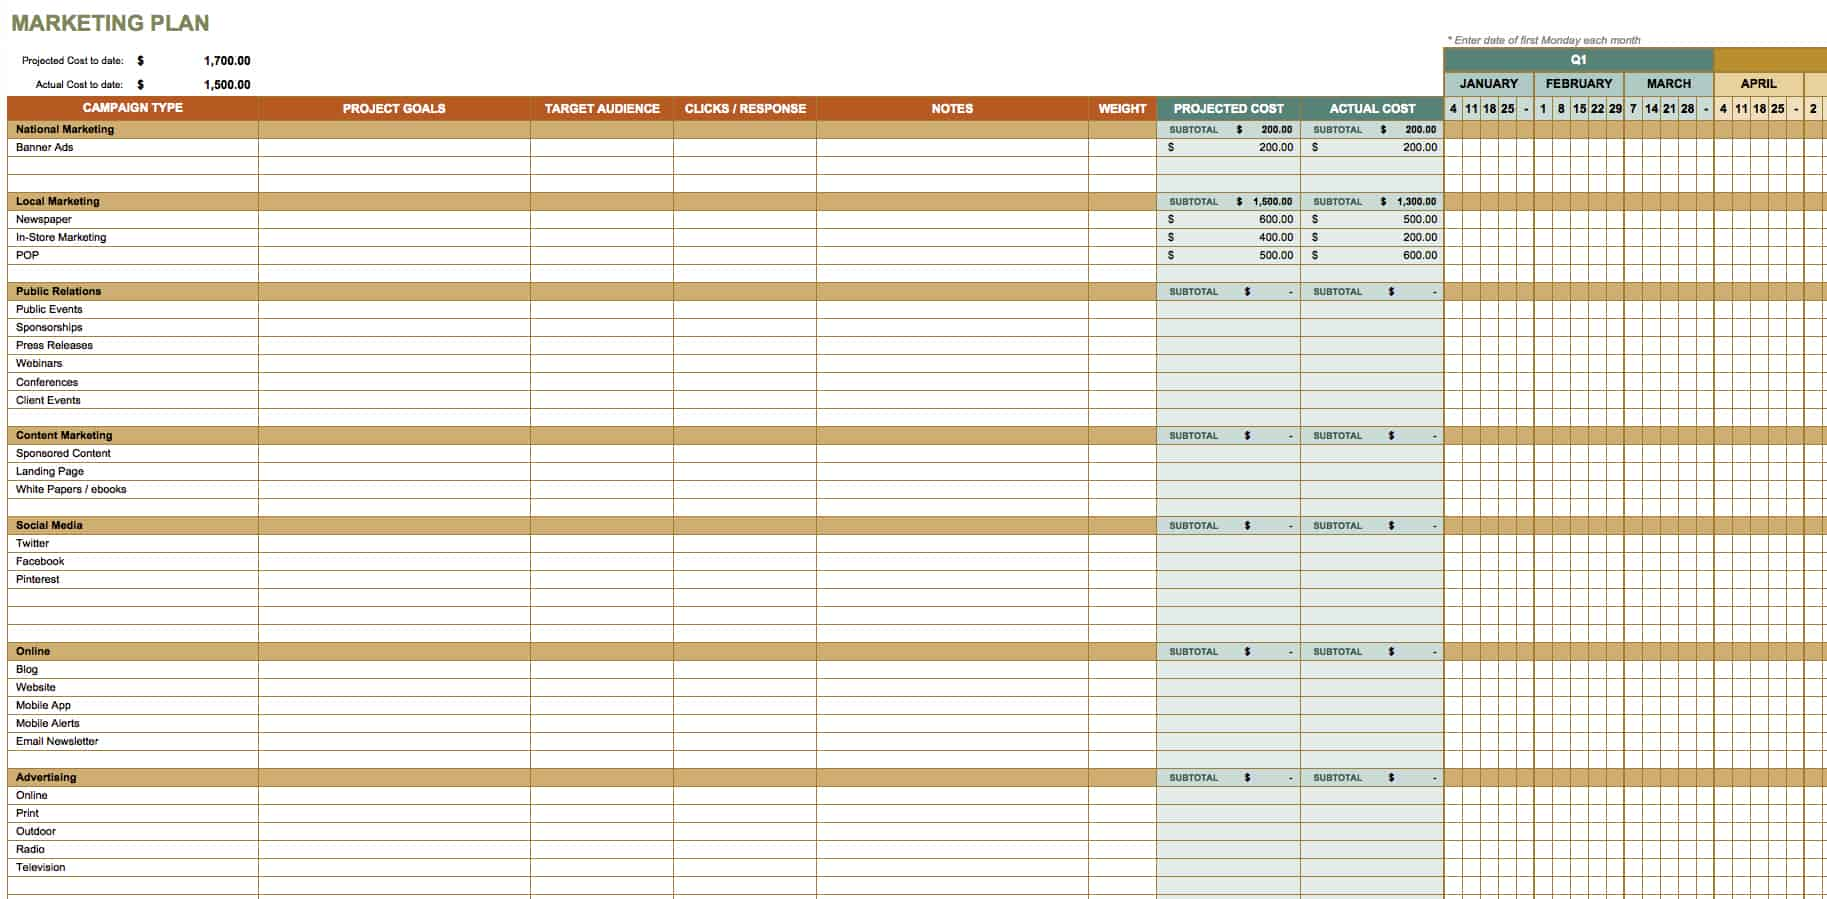 Free marketing plan templates for excel smartsheet for Regulatory plan template